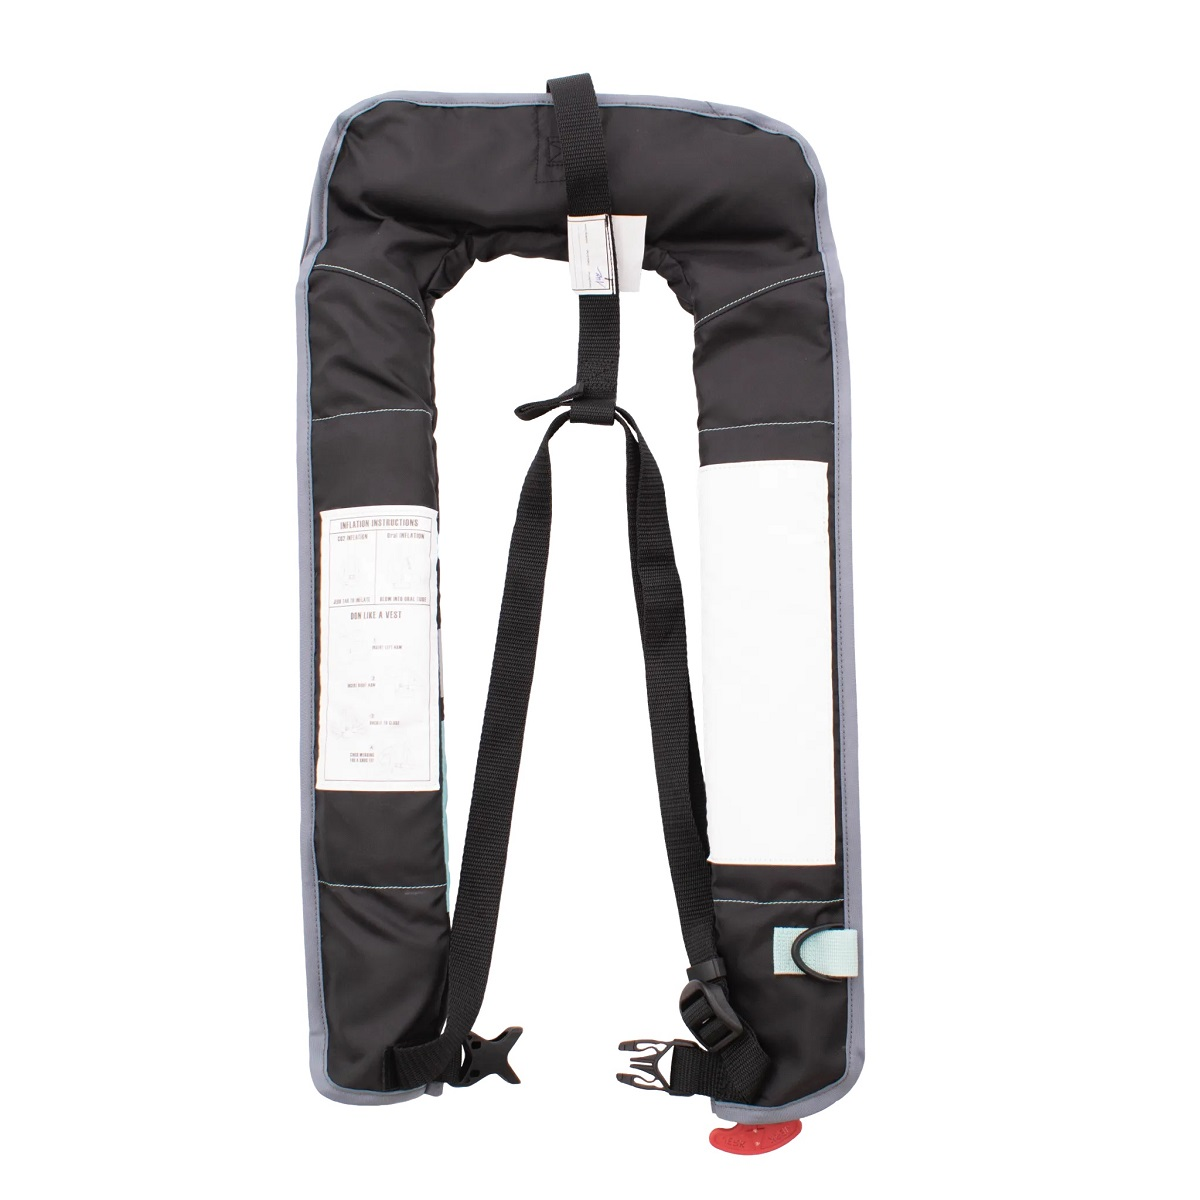 BOTE Inflatable Vest PFD - Back View